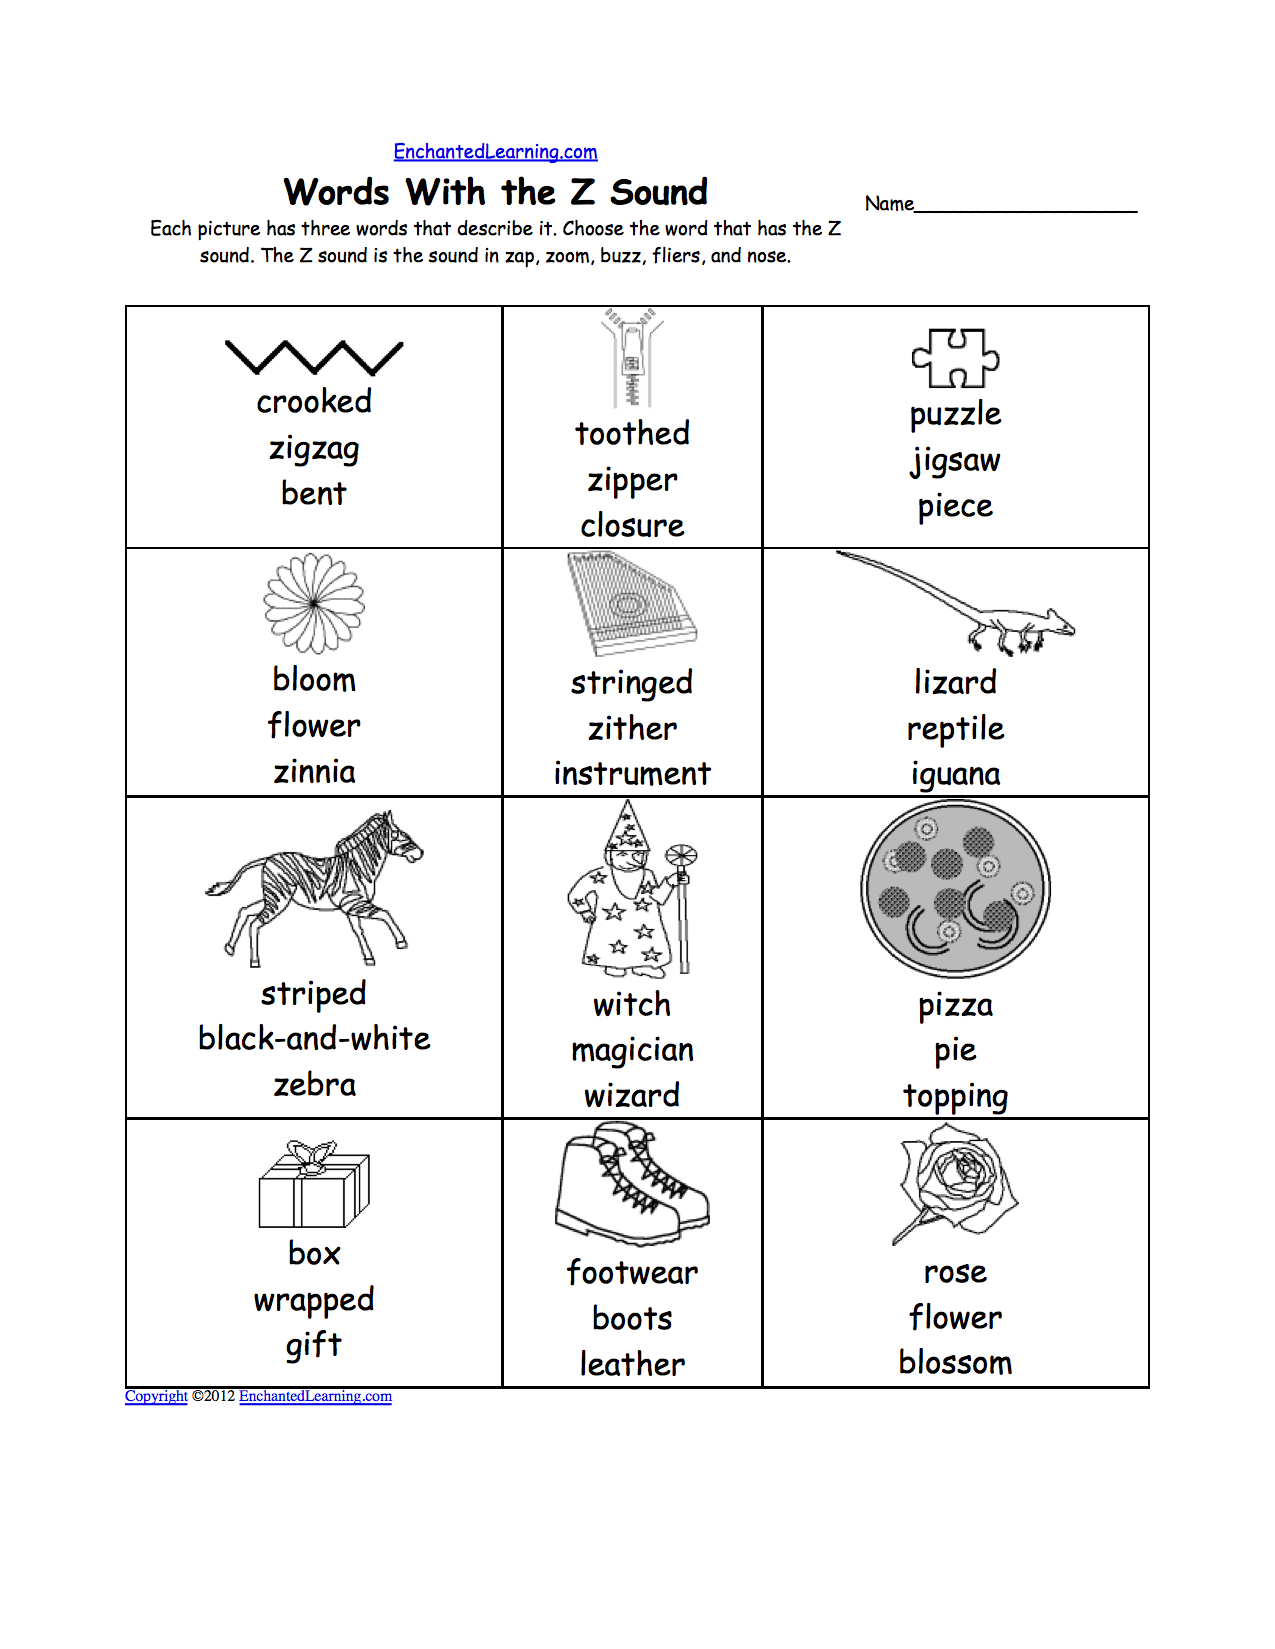 Proatmealus  Inspiring Phonics Worksheets Multiple Choice Worksheets To Print  With Heavenly Phonics Worksheets Multiple Choice Worksheets To Print  Enchantedlearningcom With Breathtaking Free Basic Multiplication Worksheets Also Ordinals Worksheet In Addition Class Planning Worksheet And Ordering Decimals Worksheet Th Grade As Well As Worksheet On Percentage Increase And Decrease Additionally Easy Area Worksheets From Enchantedlearningcom With Proatmealus  Heavenly Phonics Worksheets Multiple Choice Worksheets To Print  With Breathtaking Phonics Worksheets Multiple Choice Worksheets To Print  Enchantedlearningcom And Inspiring Free Basic Multiplication Worksheets Also Ordinals Worksheet In Addition Class Planning Worksheet From Enchantedlearningcom